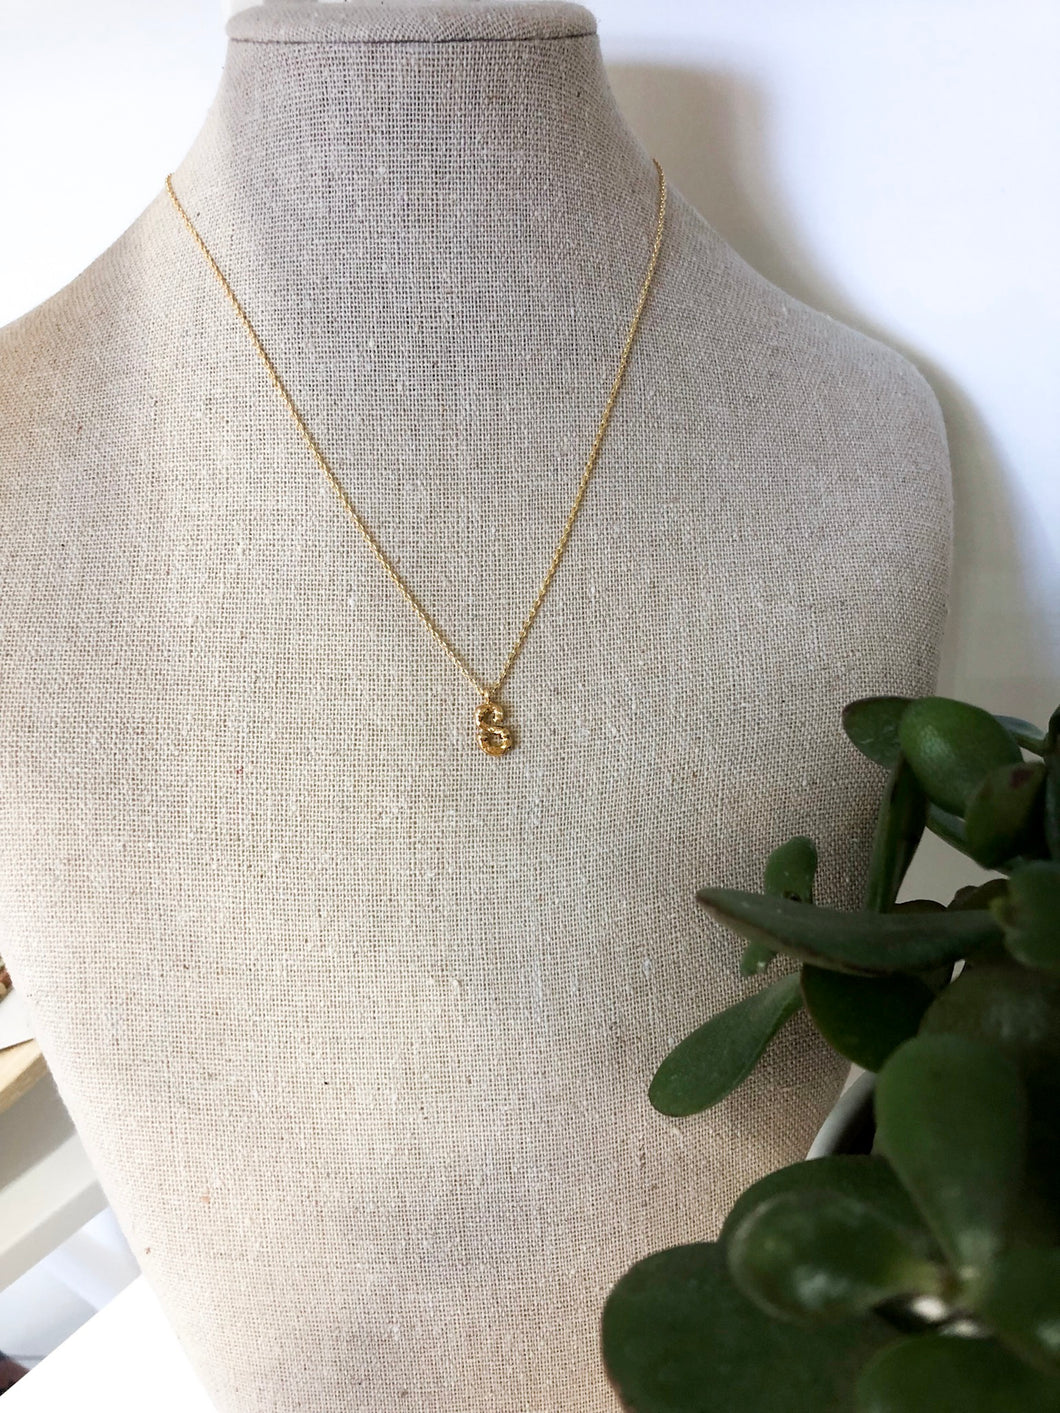 Bamboo Initial Necklace - S